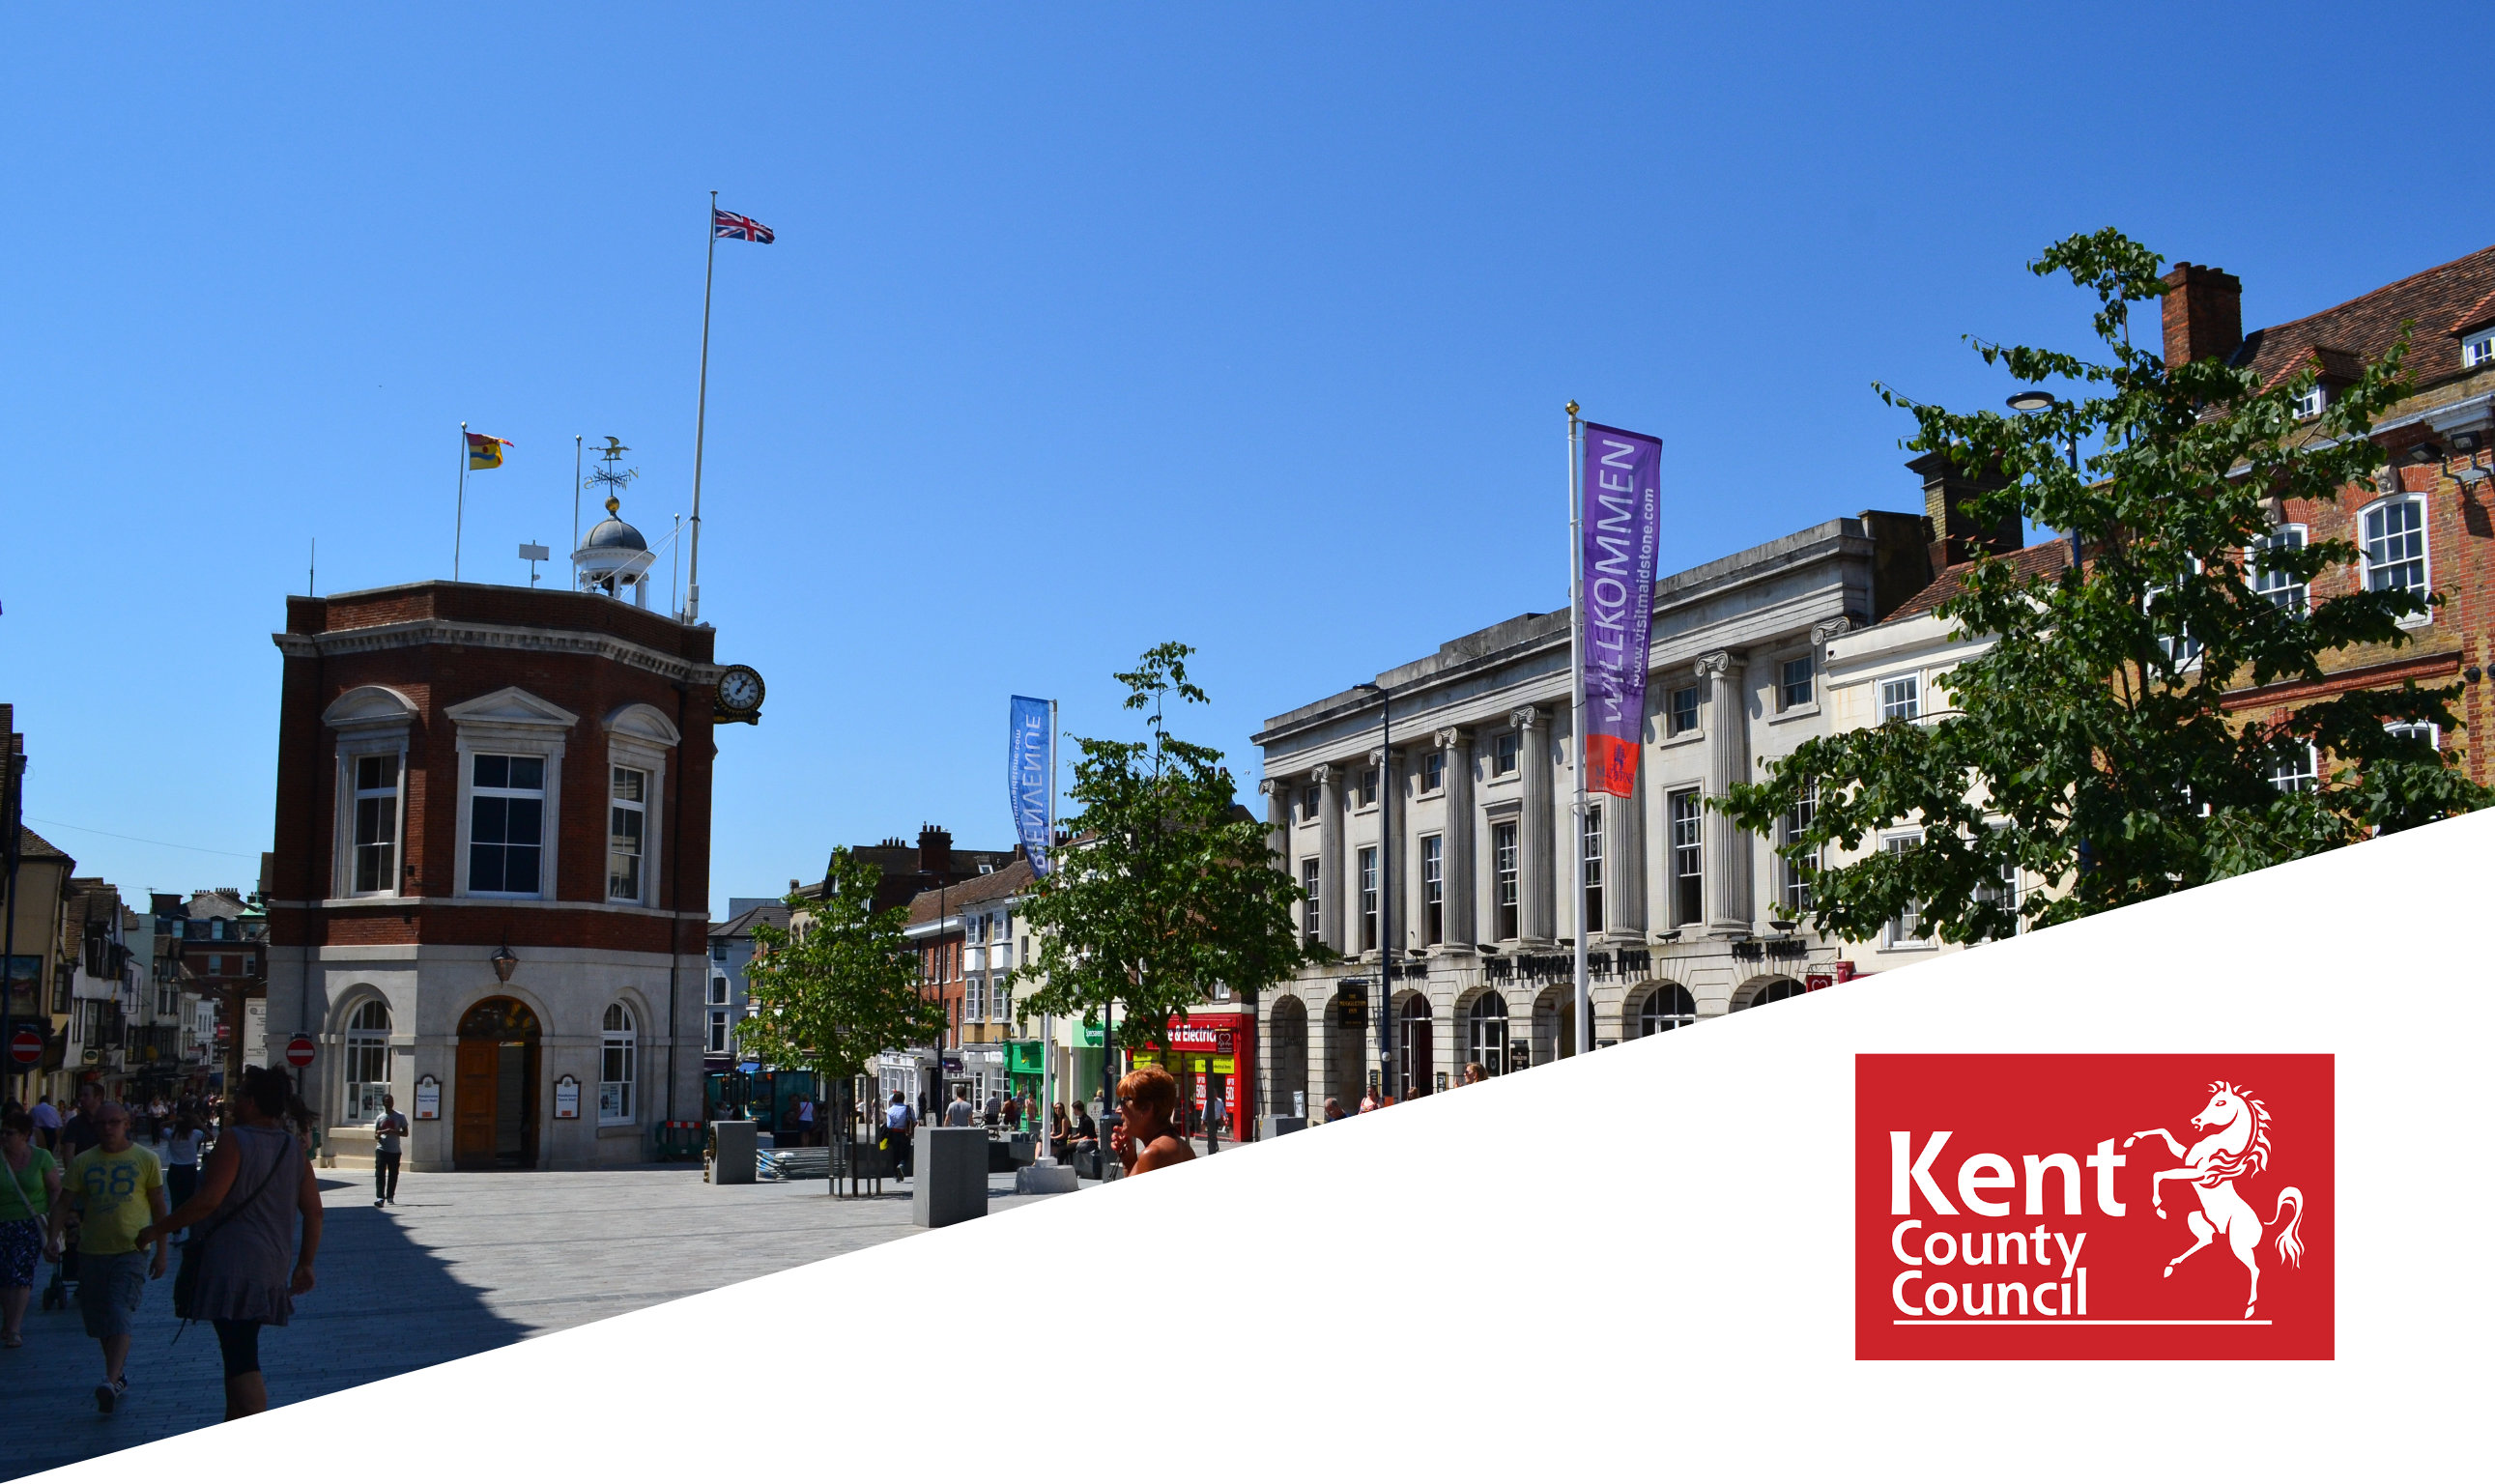 Street view showing buildings in Kent on a sunny day